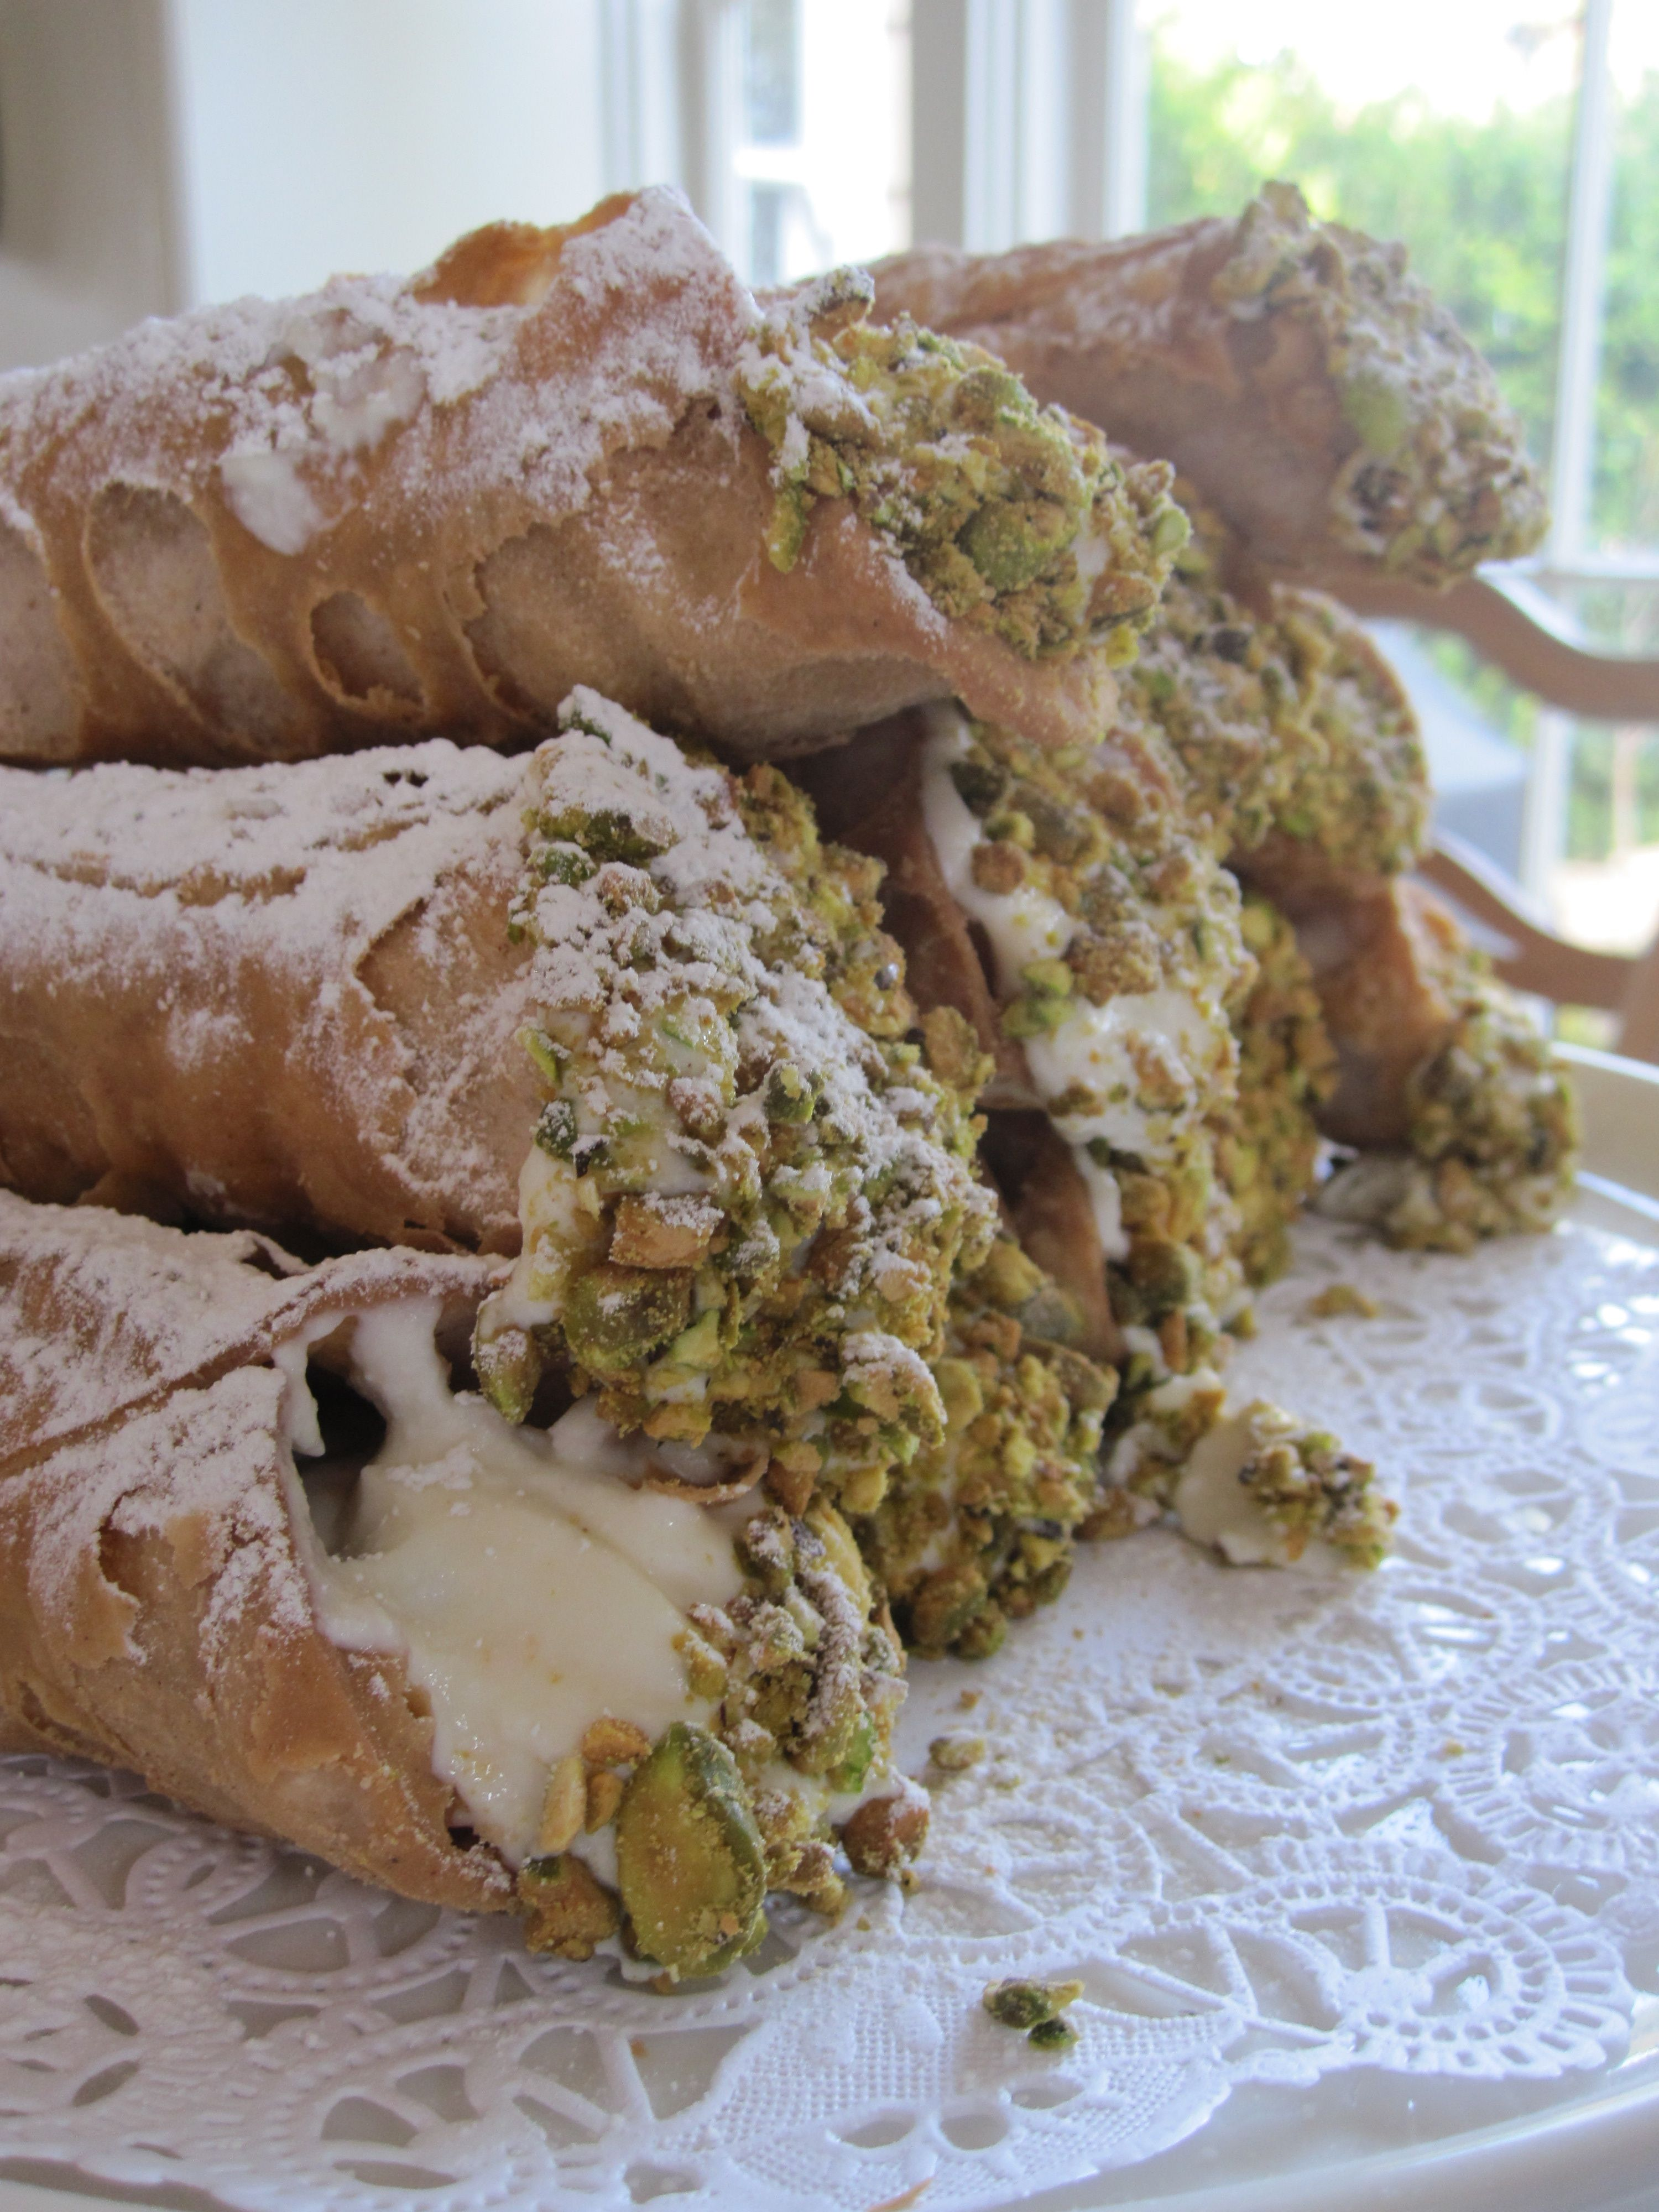 My daughter's cannolis.